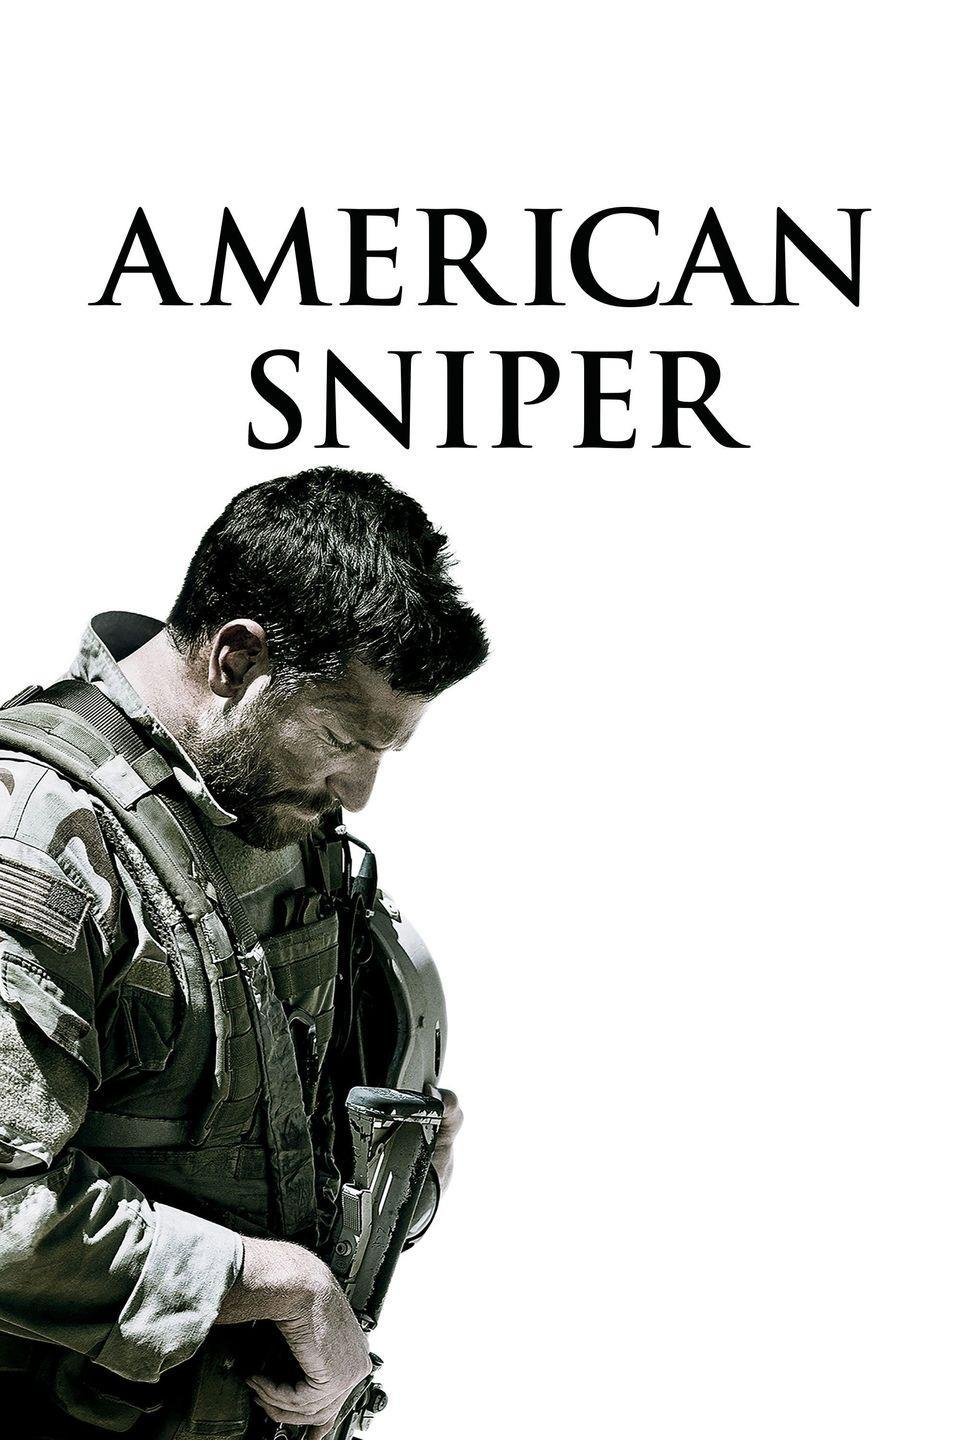 "<p><a class=""link rapid-noclick-resp"" href=""https://www.amazon.com/American-Sniper-Bradley-Cooper/dp/B00RFHVCFI?tag=syn-yahoo-20&ascsubtag=%5Bartid%7C10070.g.36096919%5Bsrc%7Cyahoo-us"" rel=""nofollow noopener"" target=""_blank"" data-ylk=""slk:STREAM NOW"">STREAM NOW</a></p><p>Based on the memoir <em>American Sniper: The Autobiography of the Most Lethal Sniper in U.S. Military History</em> by Chris Kyle, this biographical drama stars Bradley Cooper as Kyle, who became the deadliest marksman in U.S. military history from four tours in the Iraq War. Though celebrated for his achievements, this film explores the emotional toll those four tours took on Kyle's life. </p><p>__________________________________________________________</p><p><em><a href=""https://subscribe.hearstmags.com/subscribe/womansday/253396?source=wdy_edit_article"" rel=""nofollow noopener"" target=""_blank"" data-ylk=""slk:Subscribe to Woman's Day"" class=""link rapid-noclick-resp"">Subscribe to Woman's Day</a> today and get <strong>73% off your first 12 issues</strong>. And while you're at it, <a href=""https://subscribe.hearstmags.com/circulation/shared/email/newsletters/signup/wdy-su01.html"" rel=""nofollow noopener"" target=""_blank"" data-ylk=""slk:sign up for our FREE newsletter"" class=""link rapid-noclick-resp"">sign up for our FREE newsletter</a> for even more of the Woman's Day content you want.</em></p>"